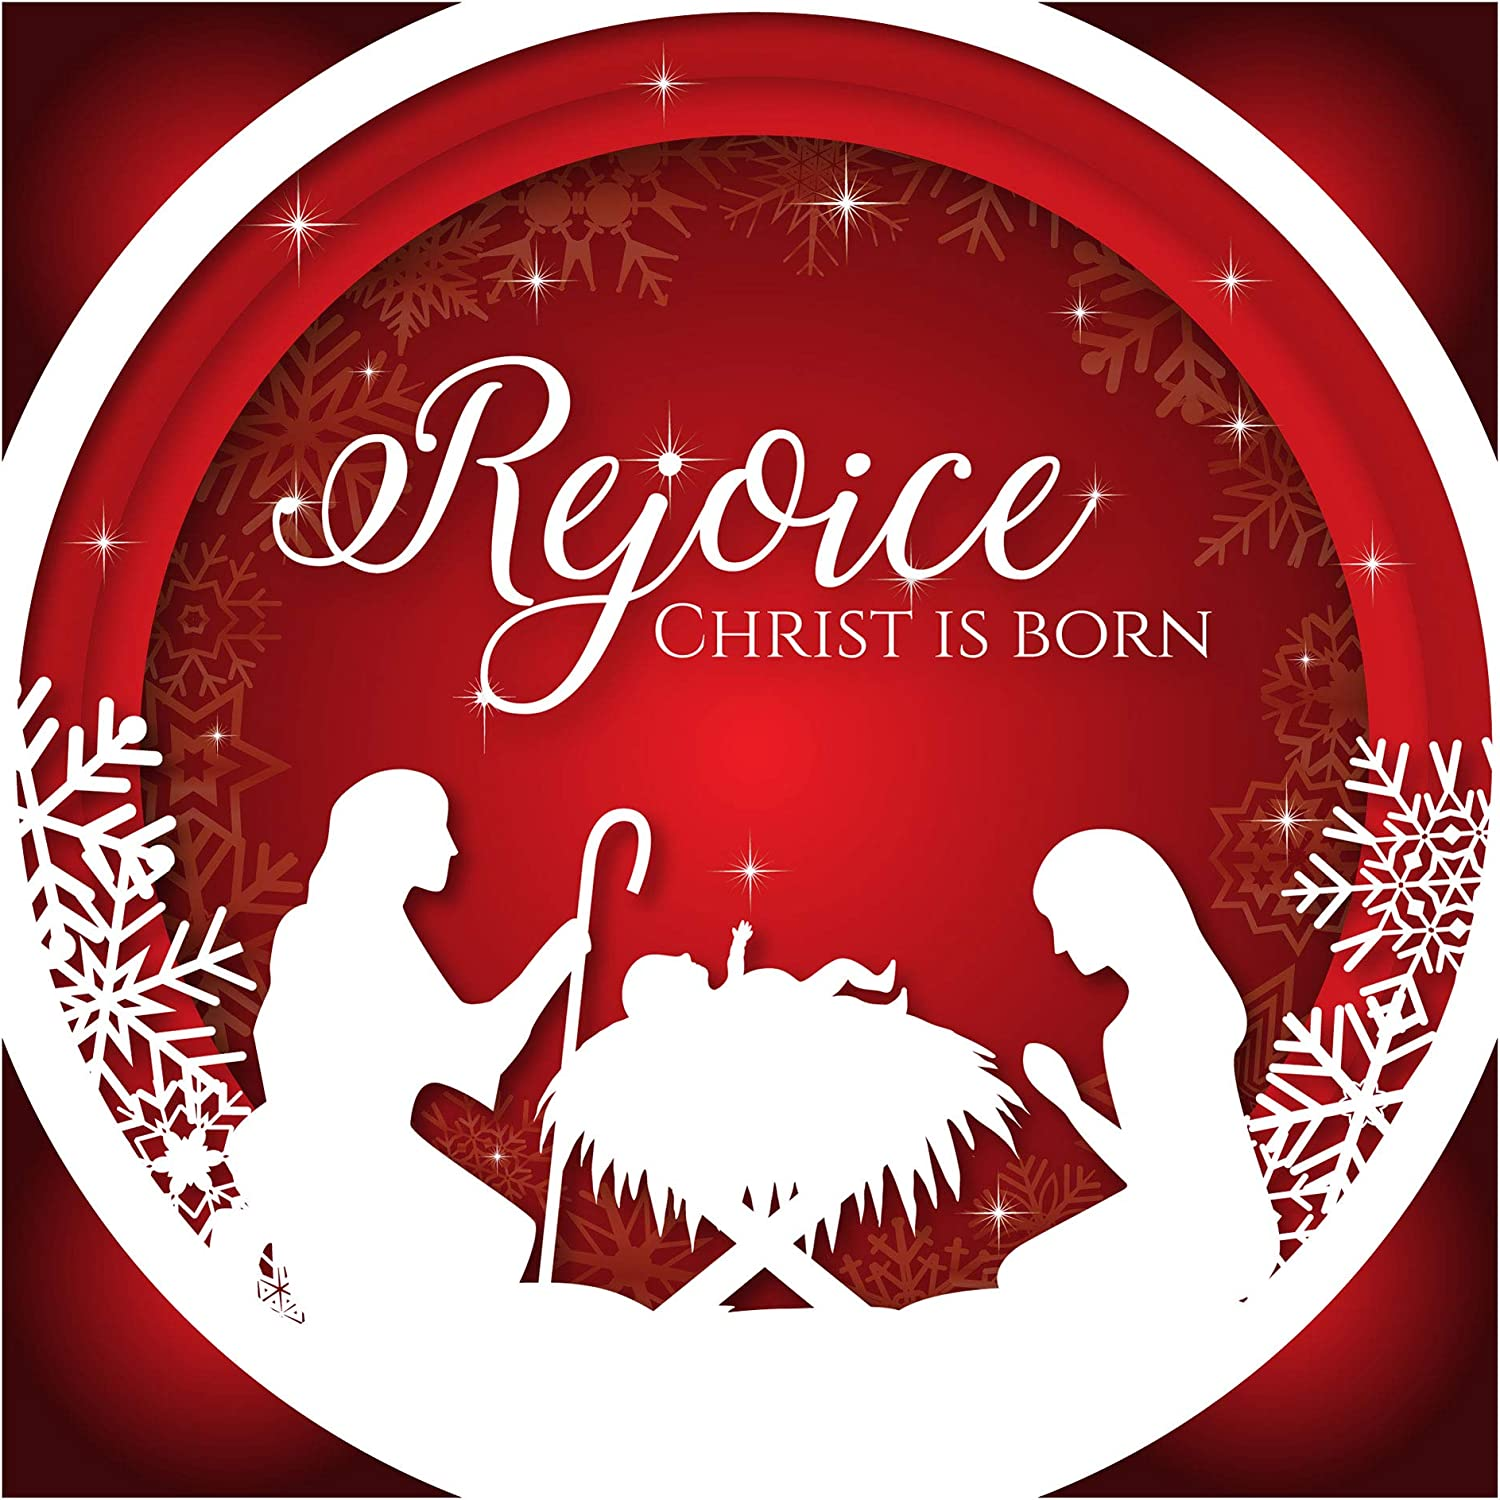 Christian Christmas Pictures 2020 Christian Christmas Cards   Rejoice, Christ is Born, Pack of 10